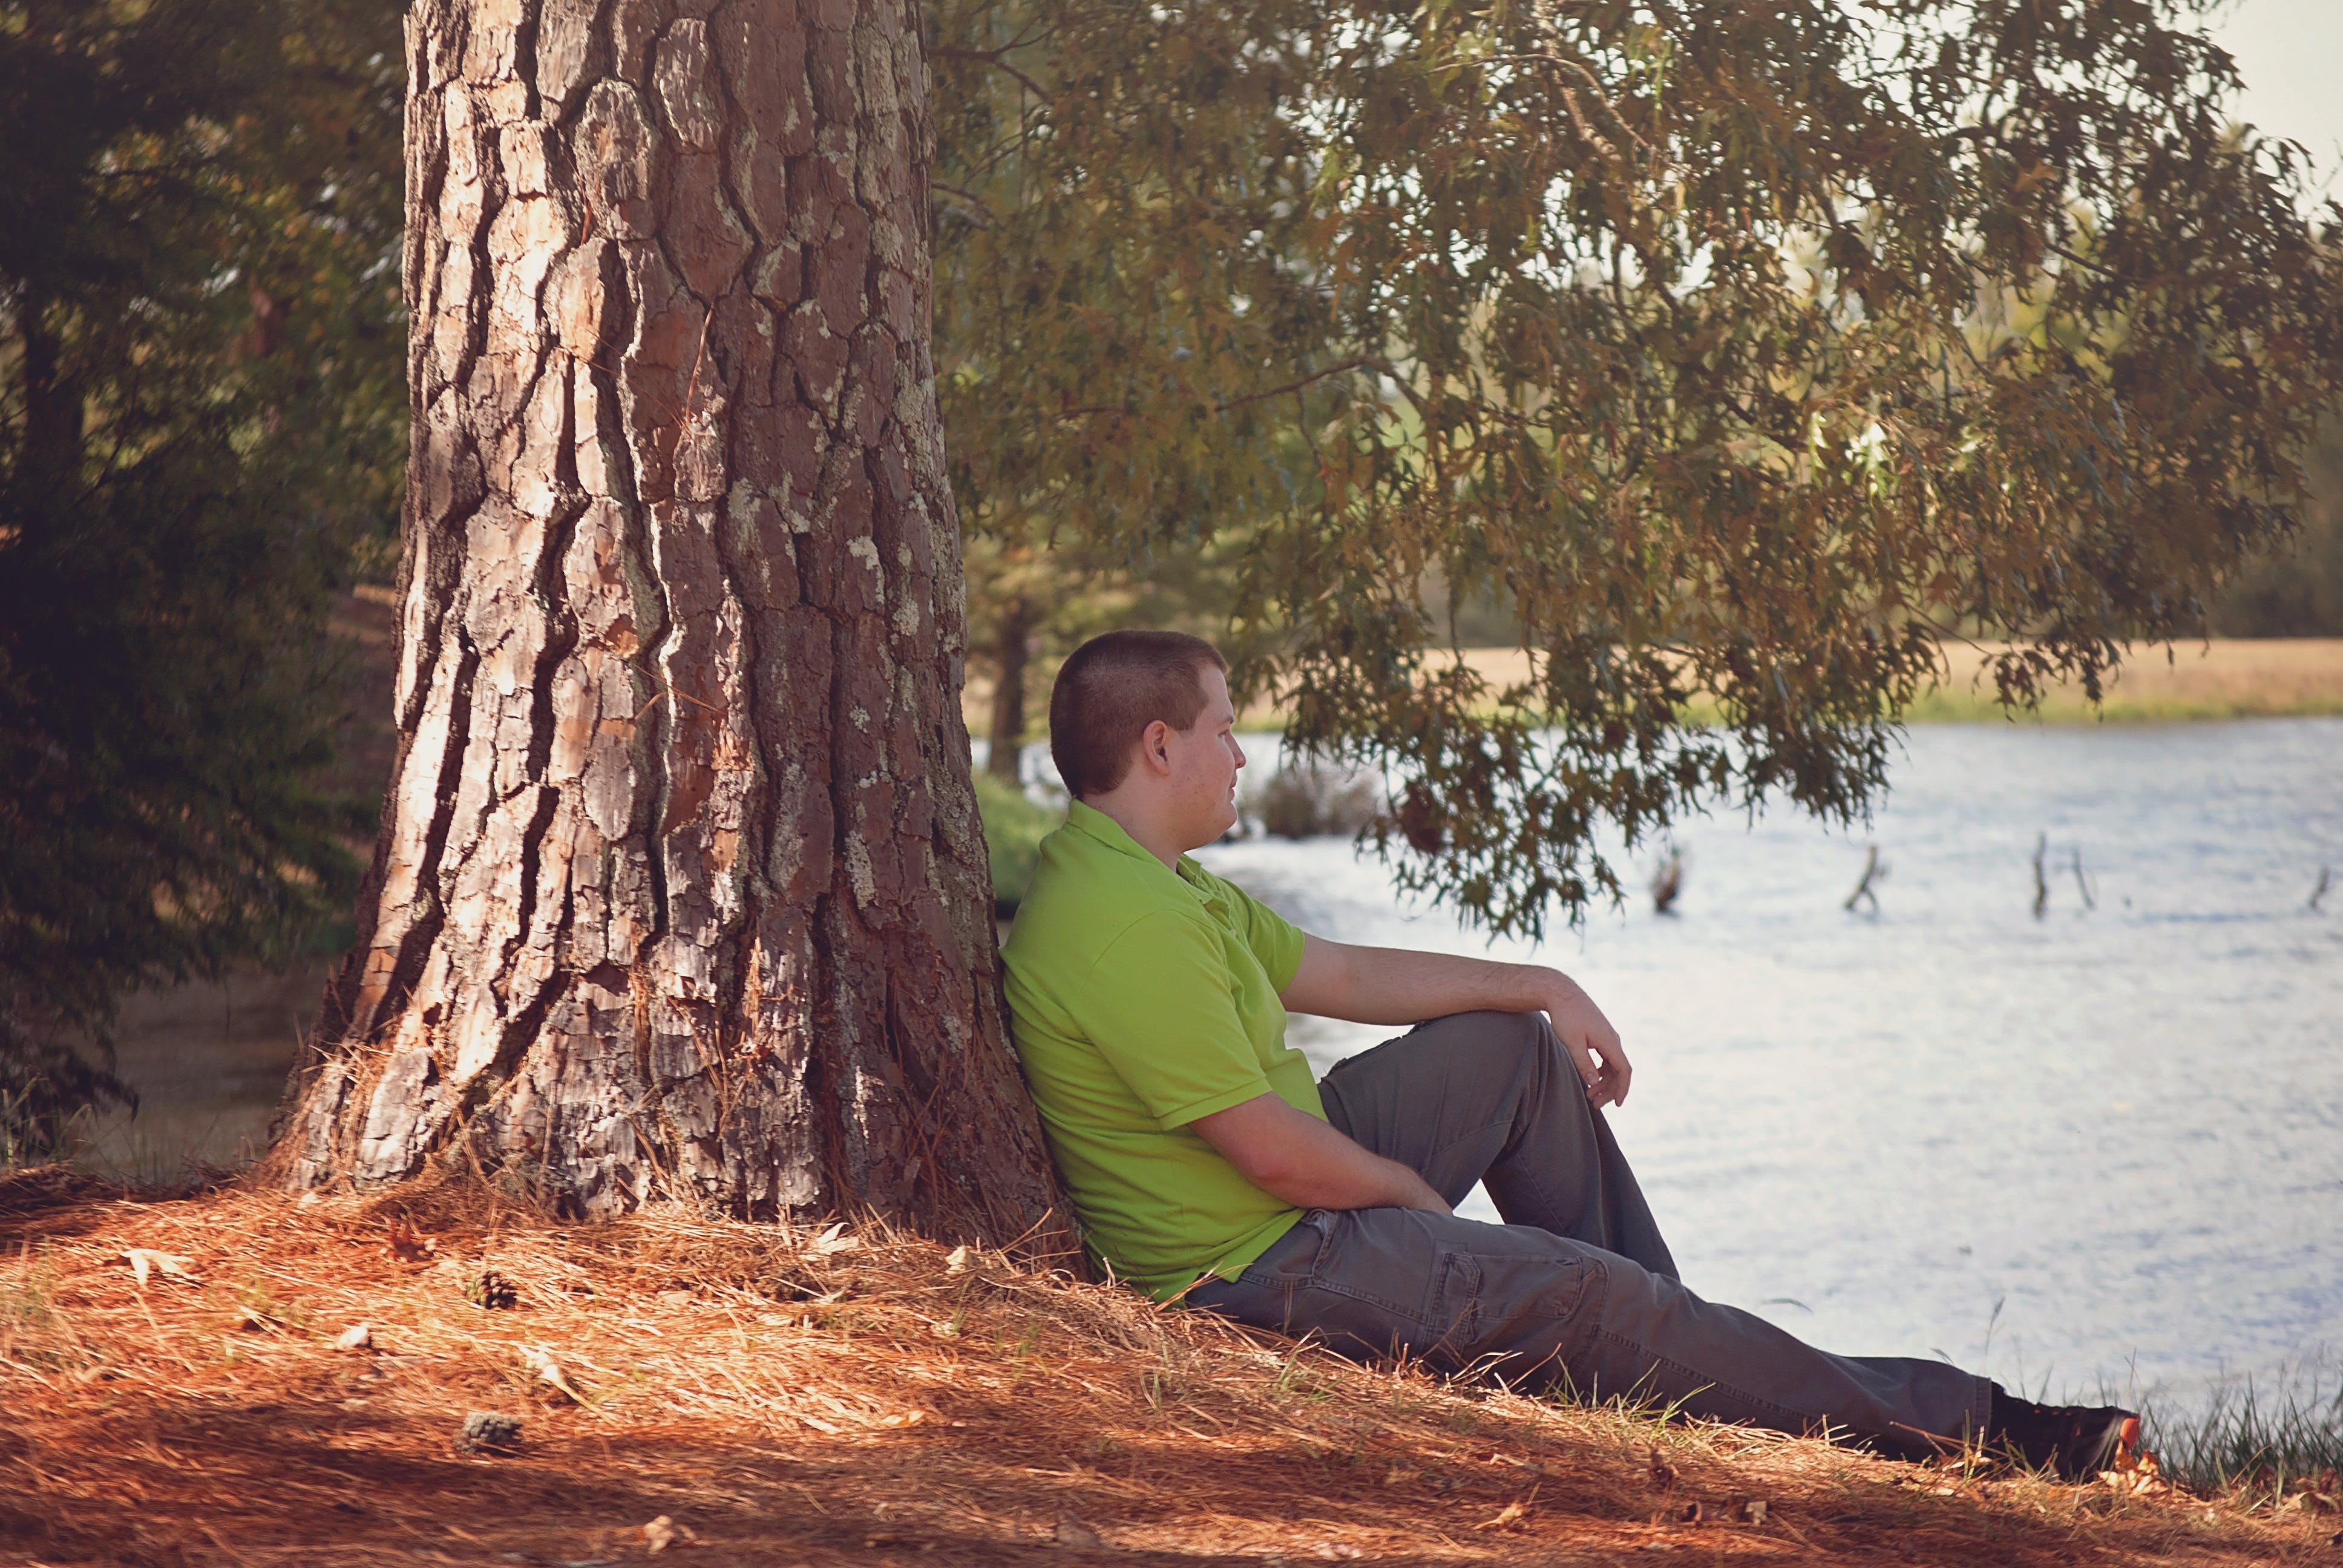 Man in Green Polo Shirt Sitting Beside Tree